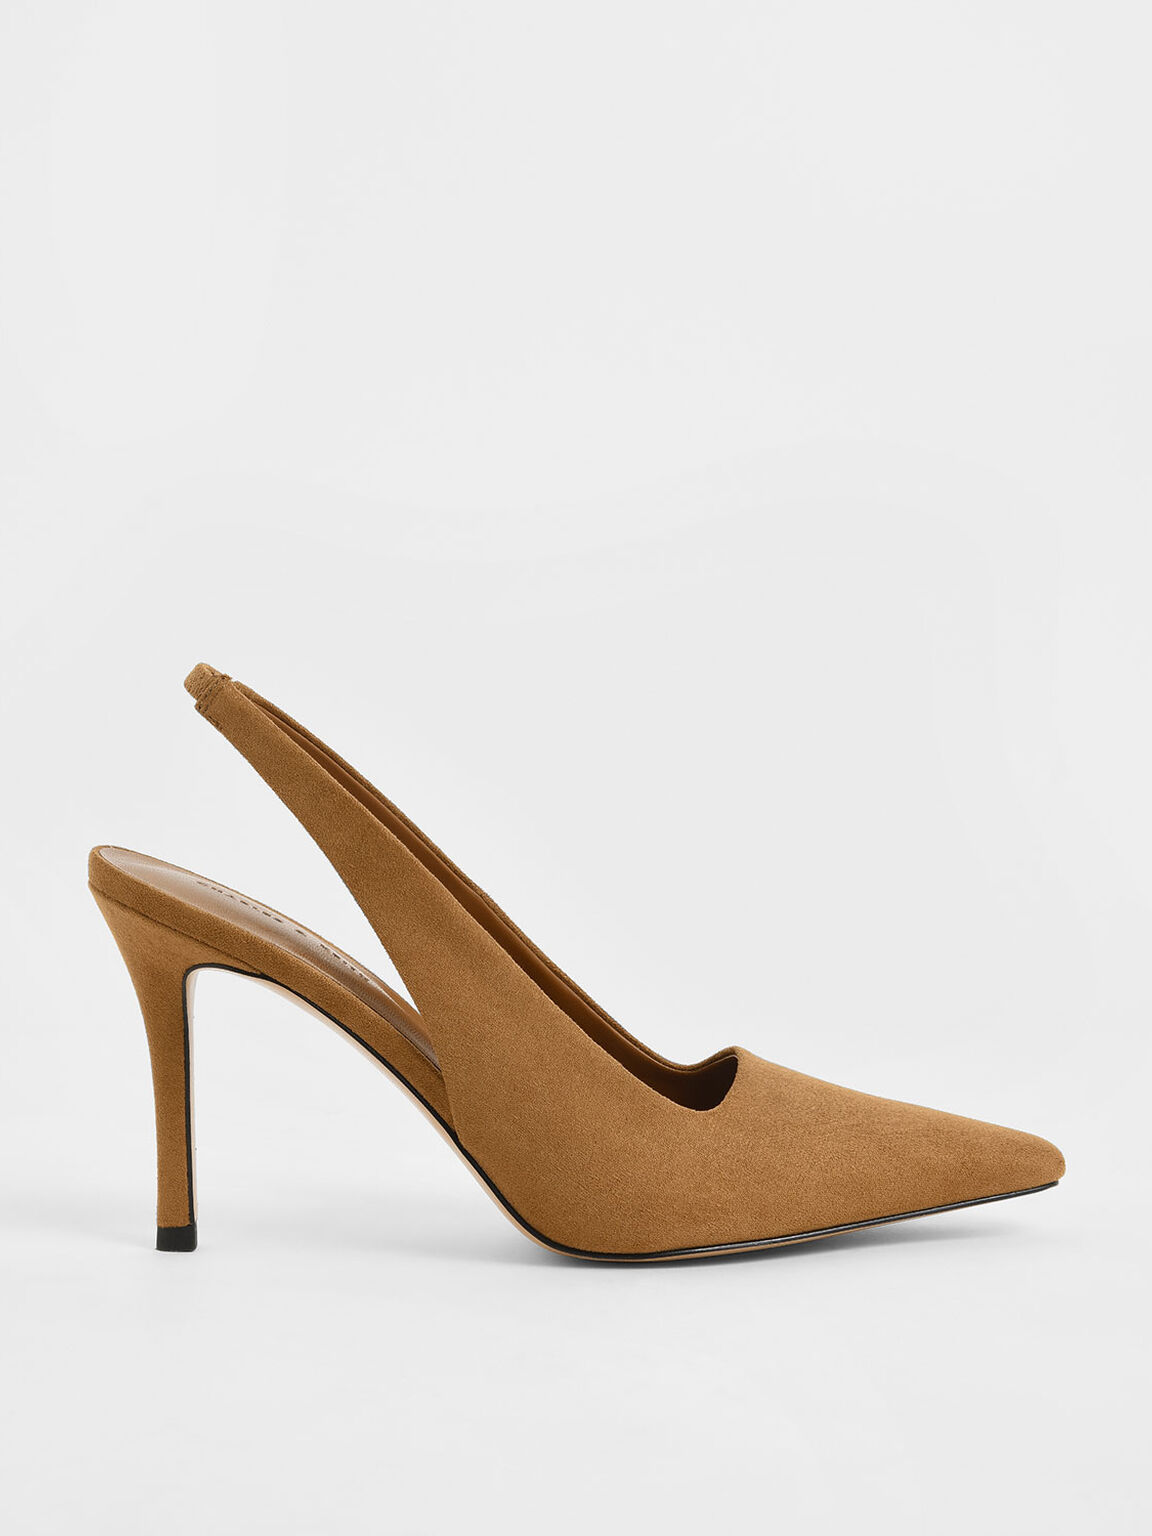 Textured Stiletto Heel Slingback Pumps, Caramel, hi-res